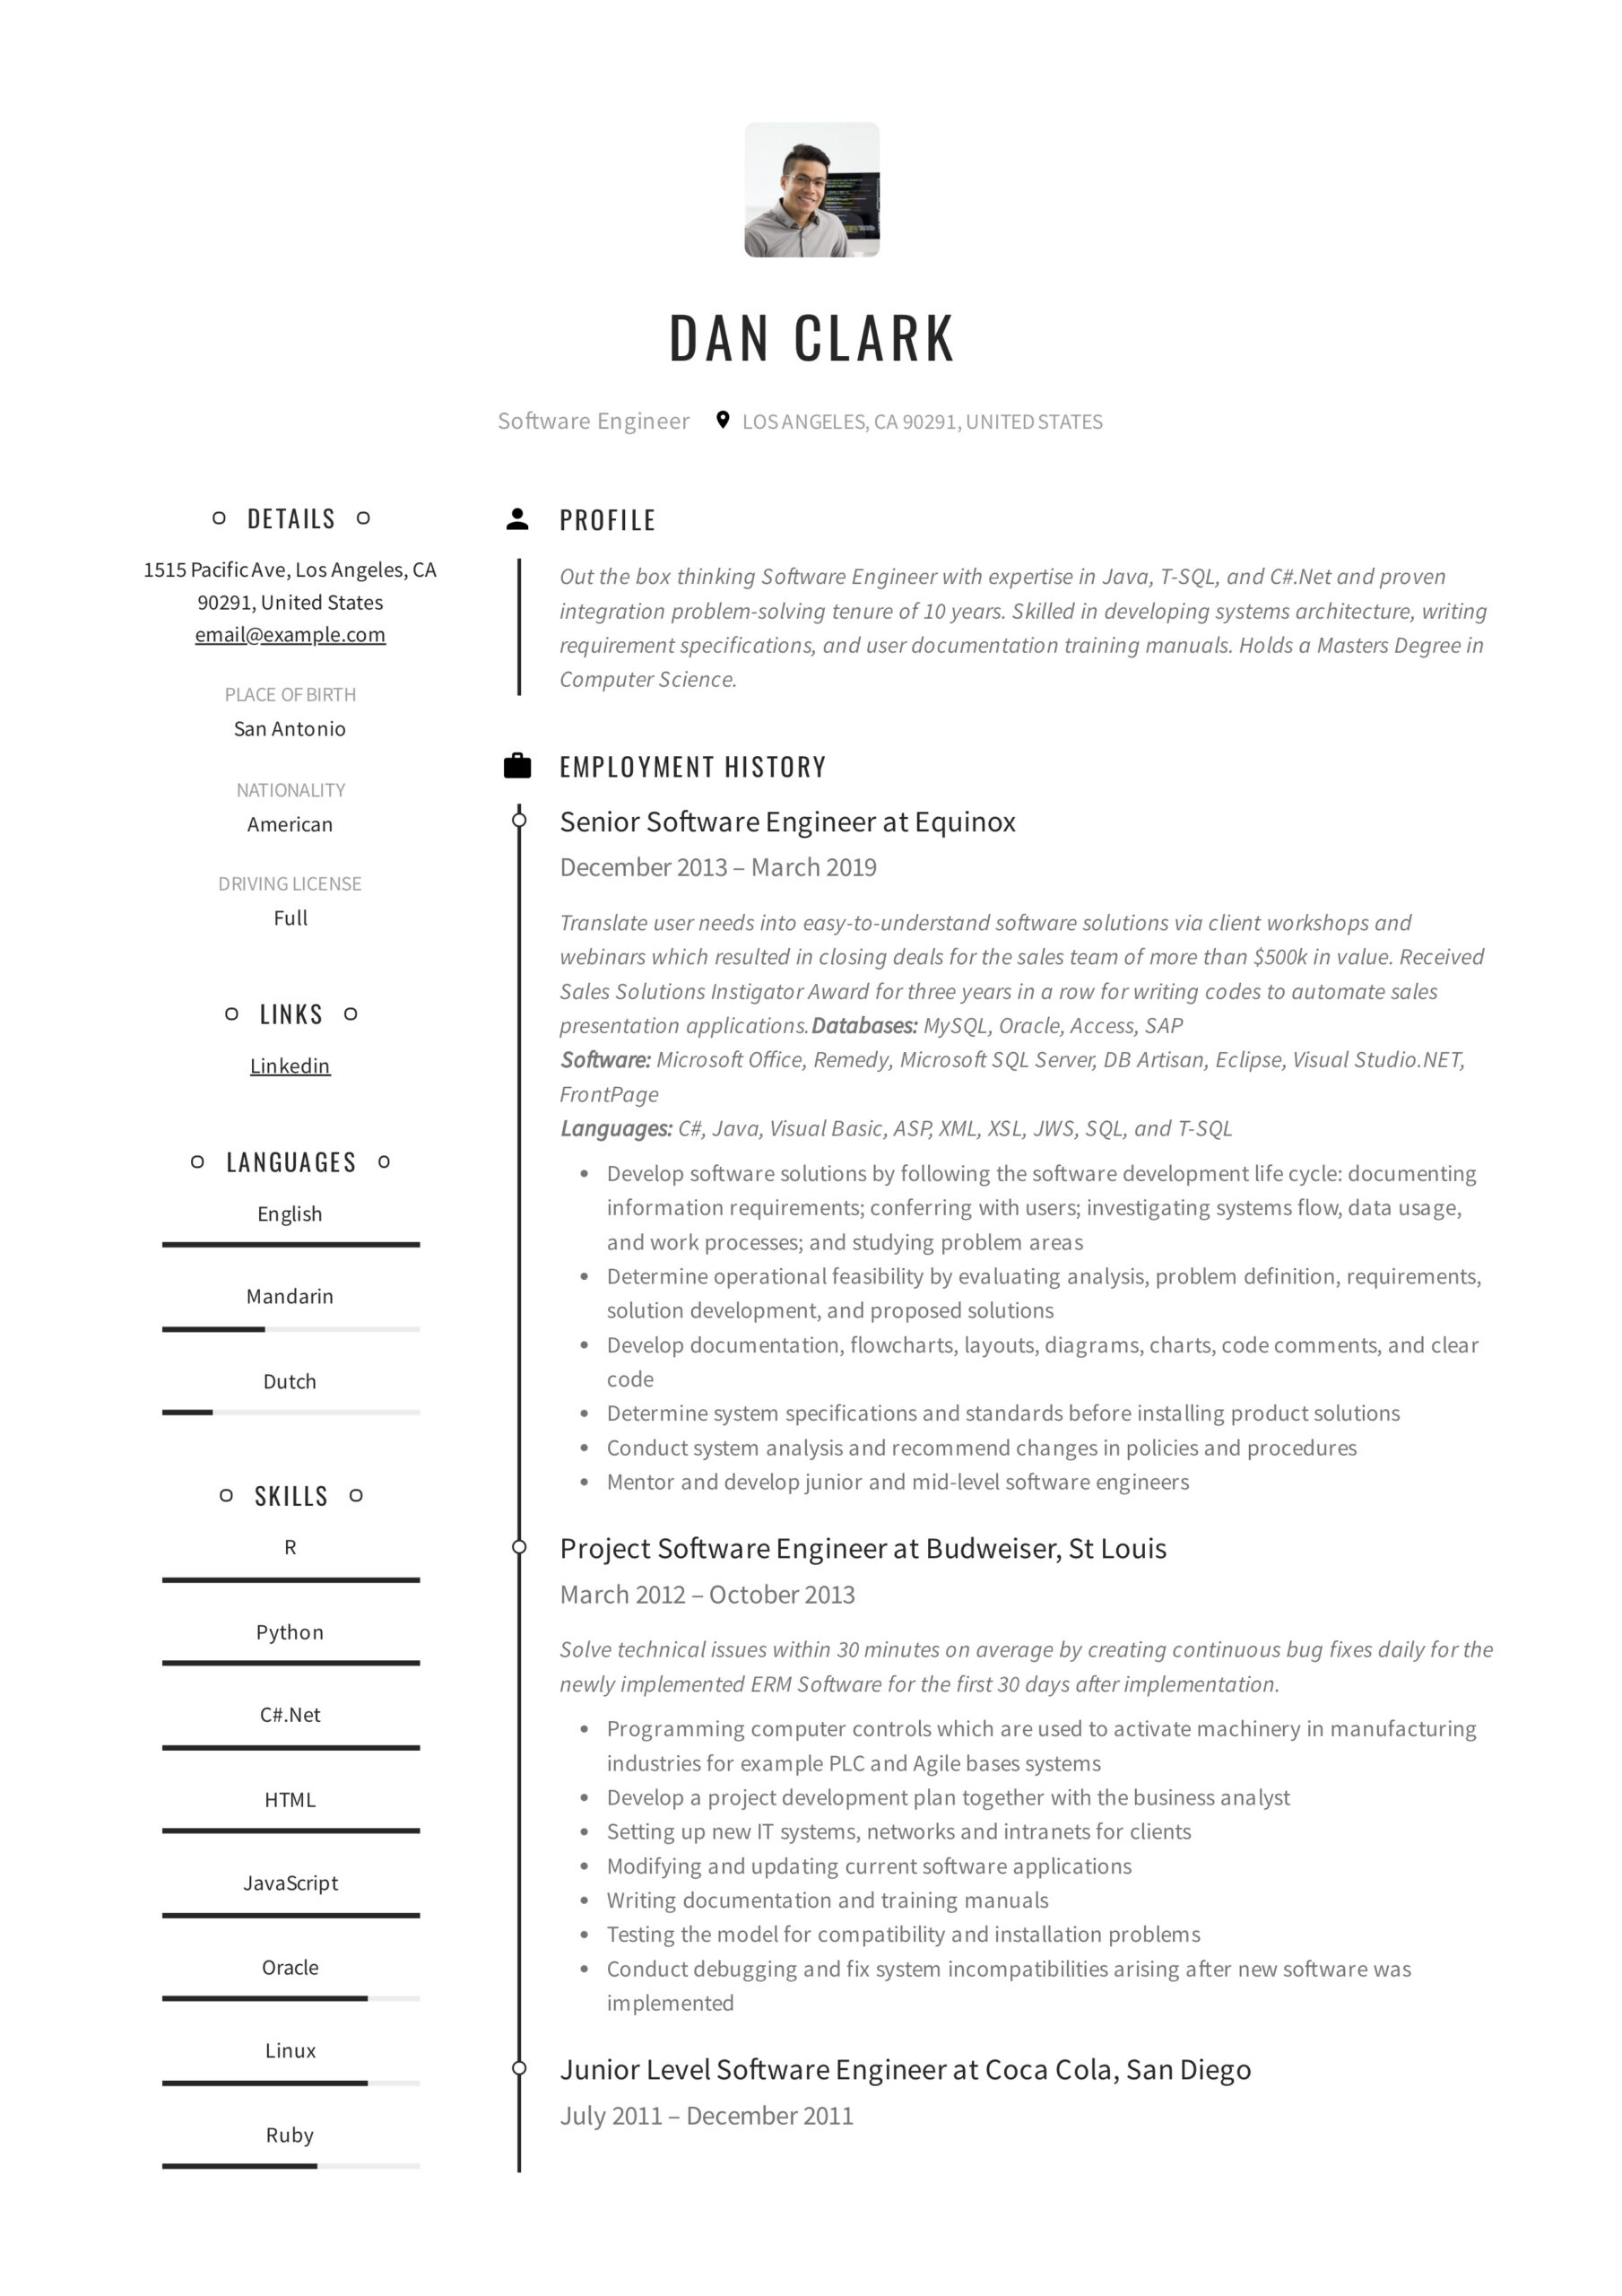 resume templates pdf word free downloads and guides best layout dan software engineer Resume Best Resume Layout 2020